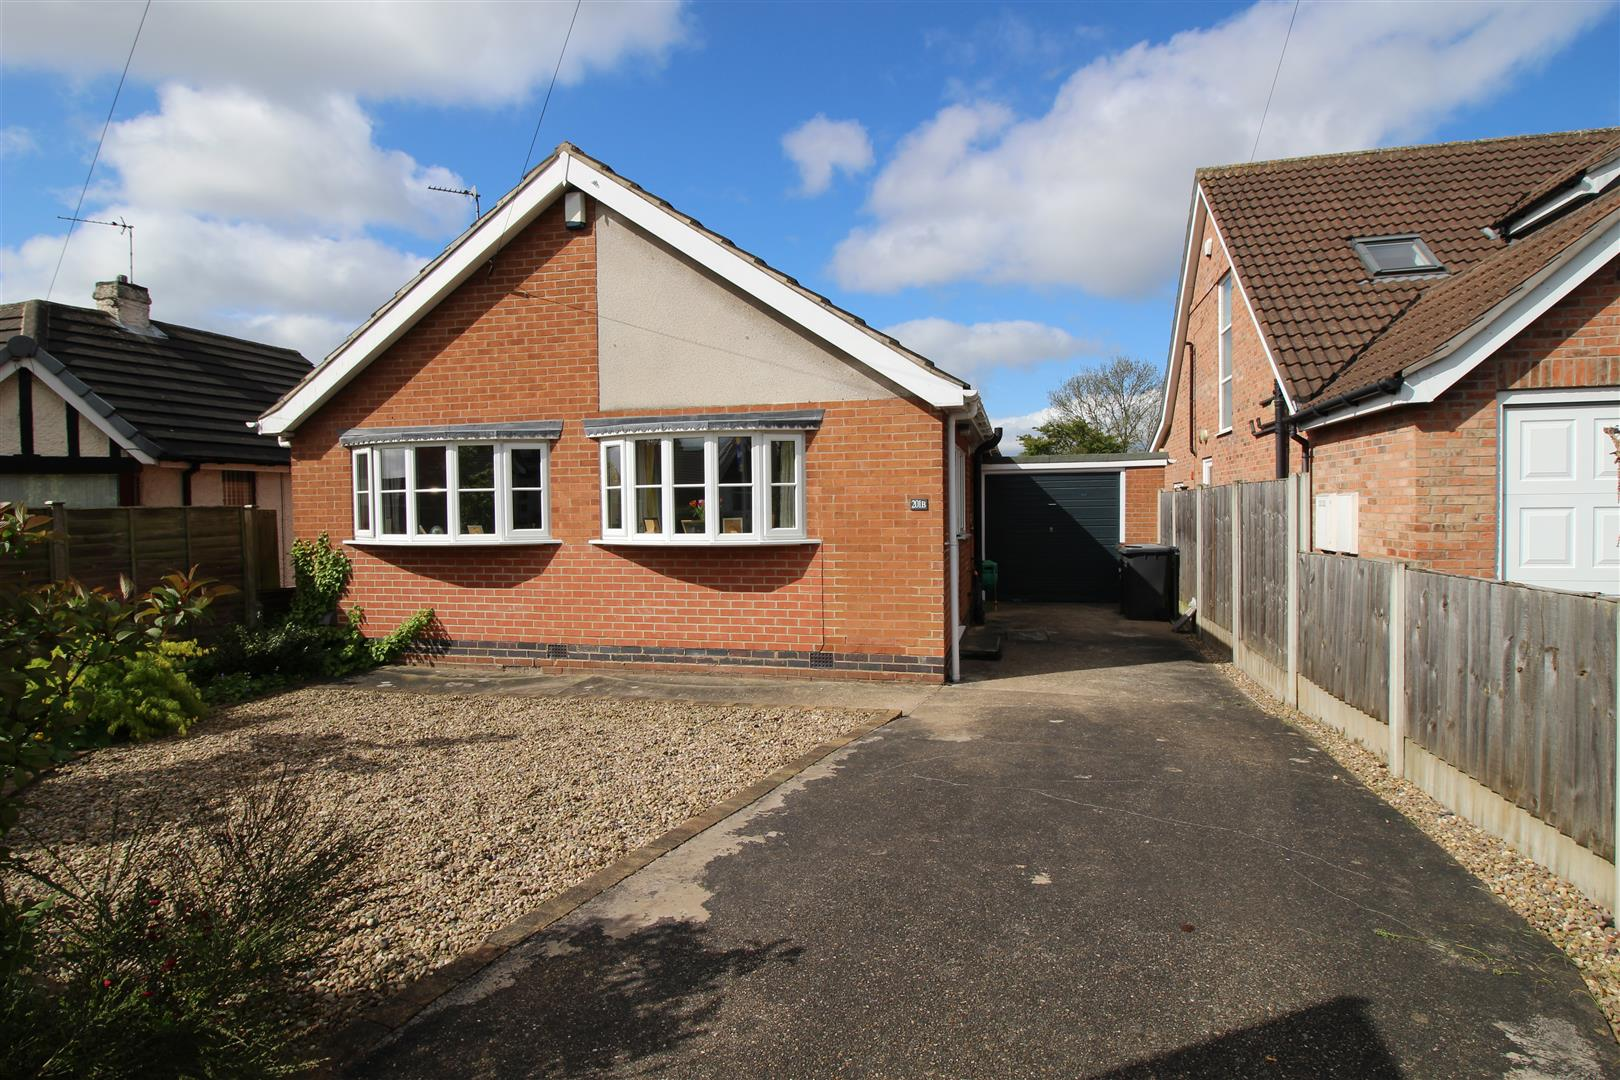 3 Bedrooms Bungalow for sale in Cator Lane North, Chilwell